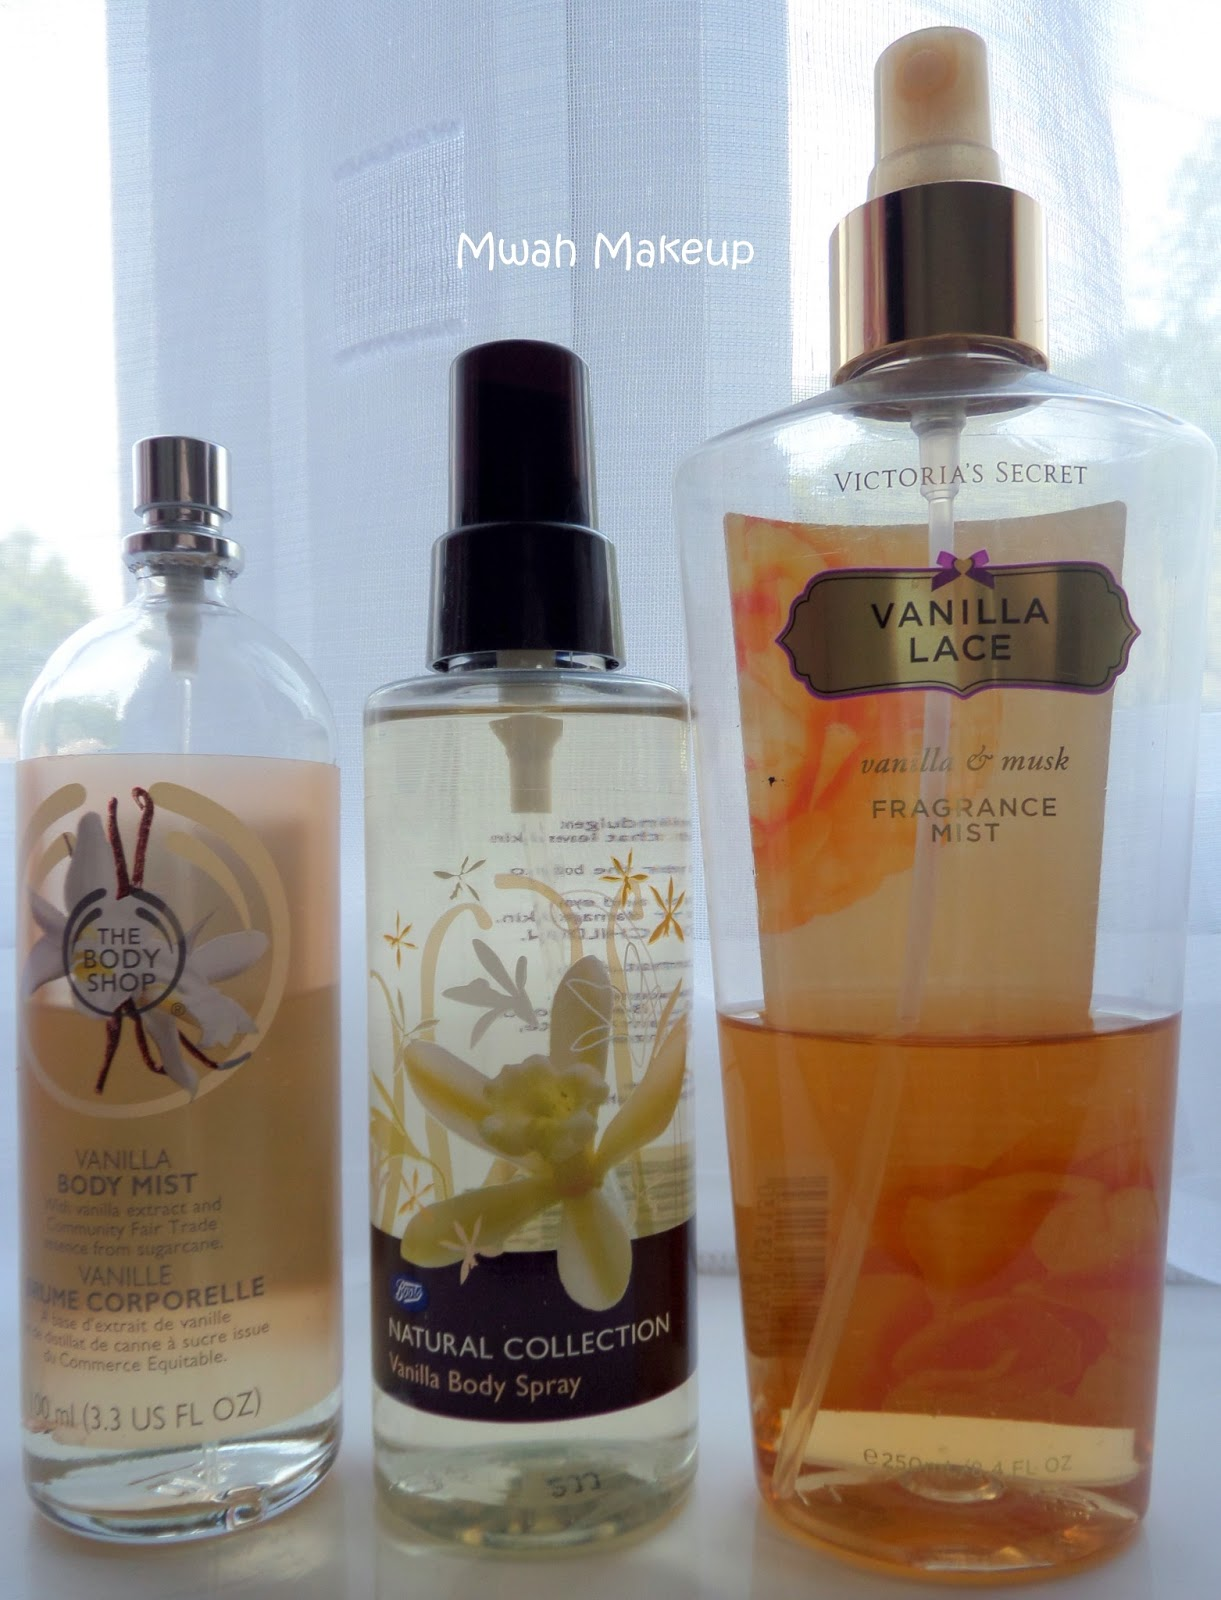 Buy Vanilla Body Mist from The Body Shop: Generously splash or lightly spritz Vanilla Body Mist for a irresistible, vanilla scent. Our warm and inviting body mist is sweetly scented with vanilla essence to gently scent your skin in a light, fresh aroma/5(56).